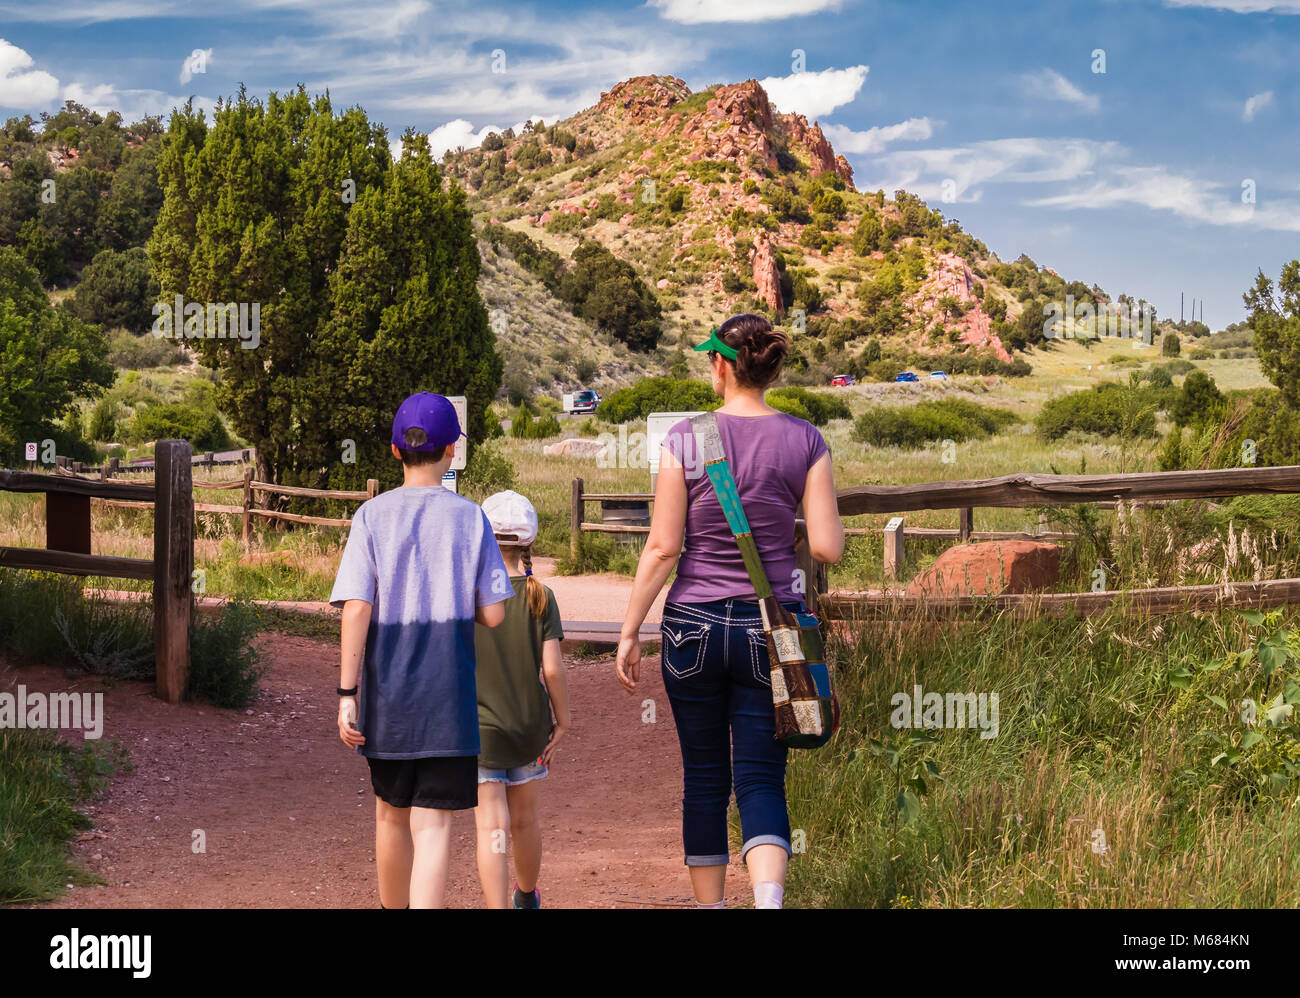 Young woman with two children walking around Garden of the Gods park in Colorado Springs, Colorado; rock formations - Stock Image